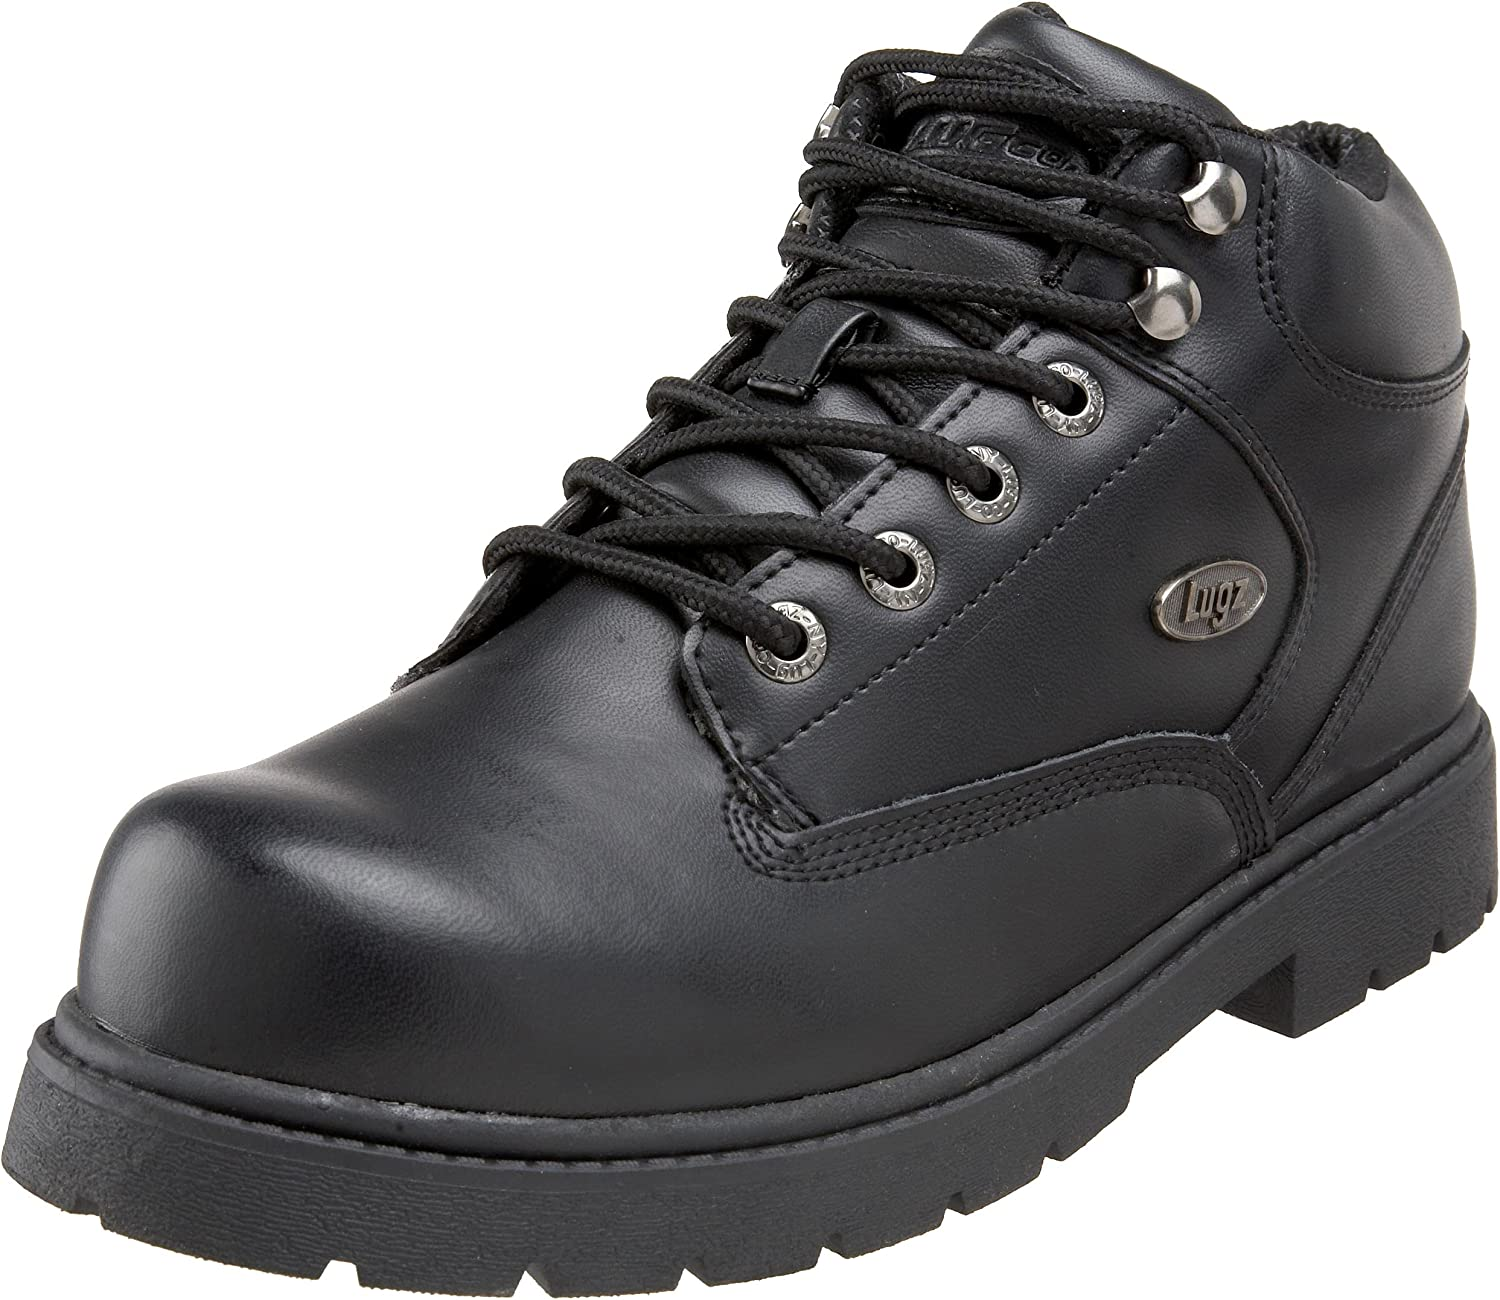 Lugz Men's Zone Hi SR